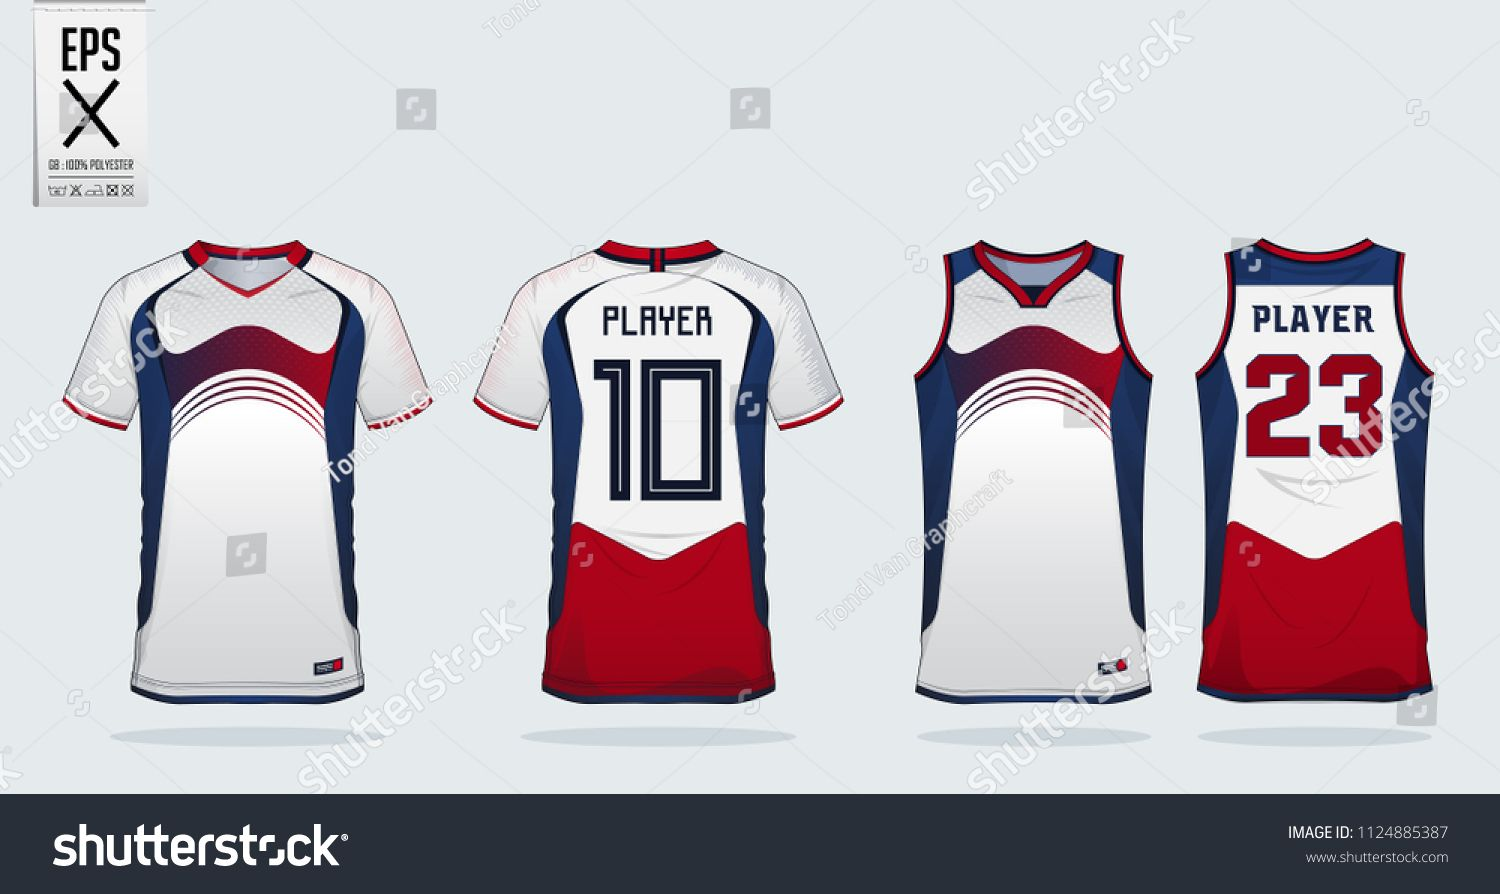 Download Blue Red White Sport Shirt Design Template For Soccer Jersey Football Kit And Tank Top For Basketball Jersey Sport Shirt Design Sports Uniforms Football Kits